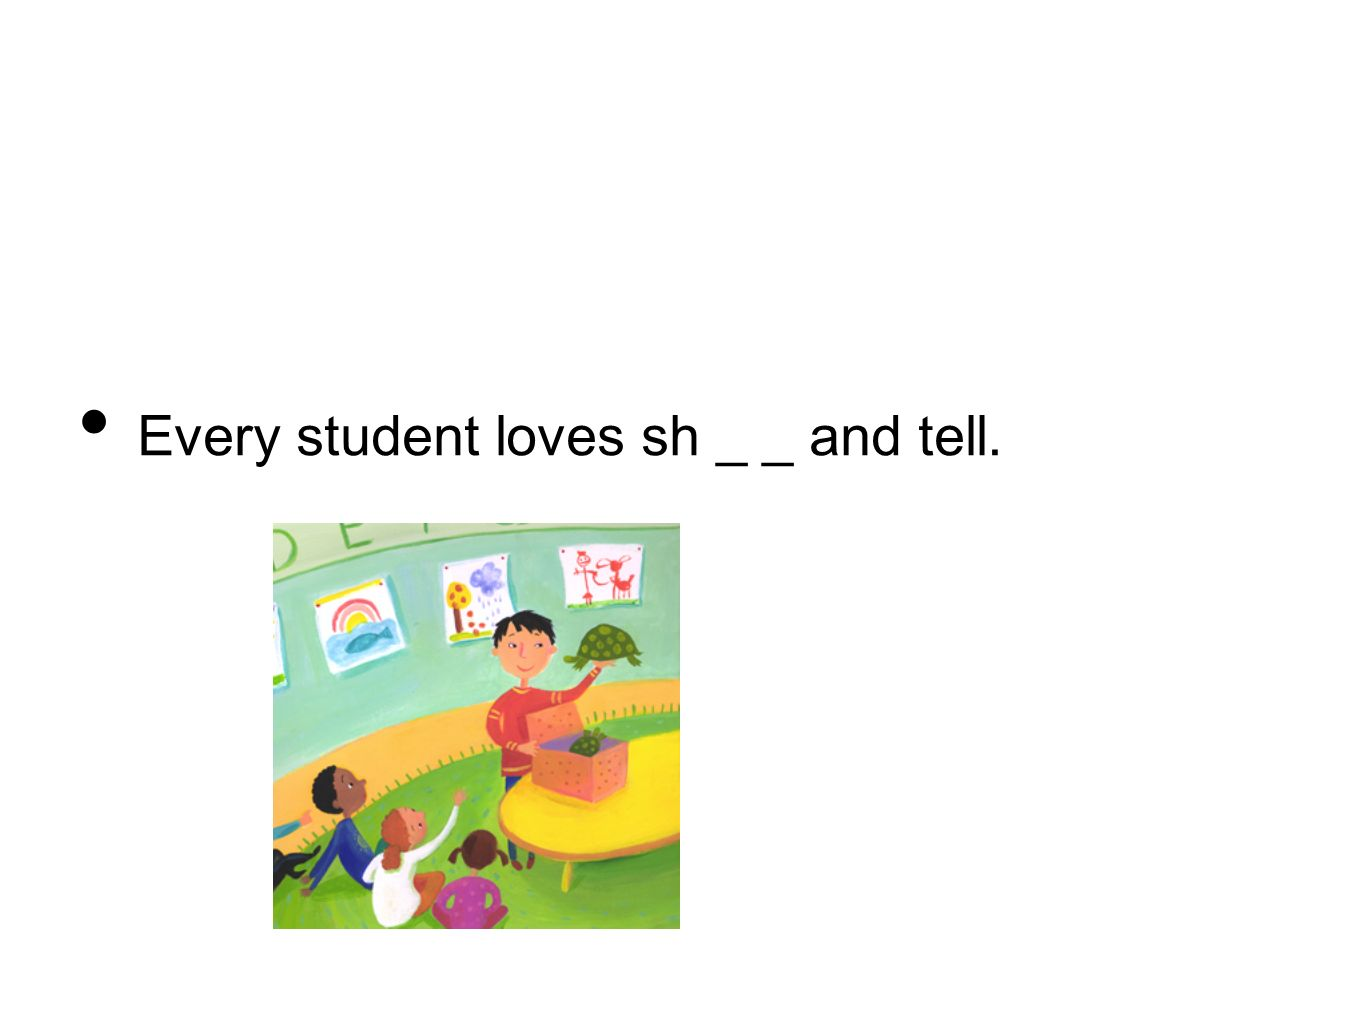 Every student loves sh _ _ and tell.